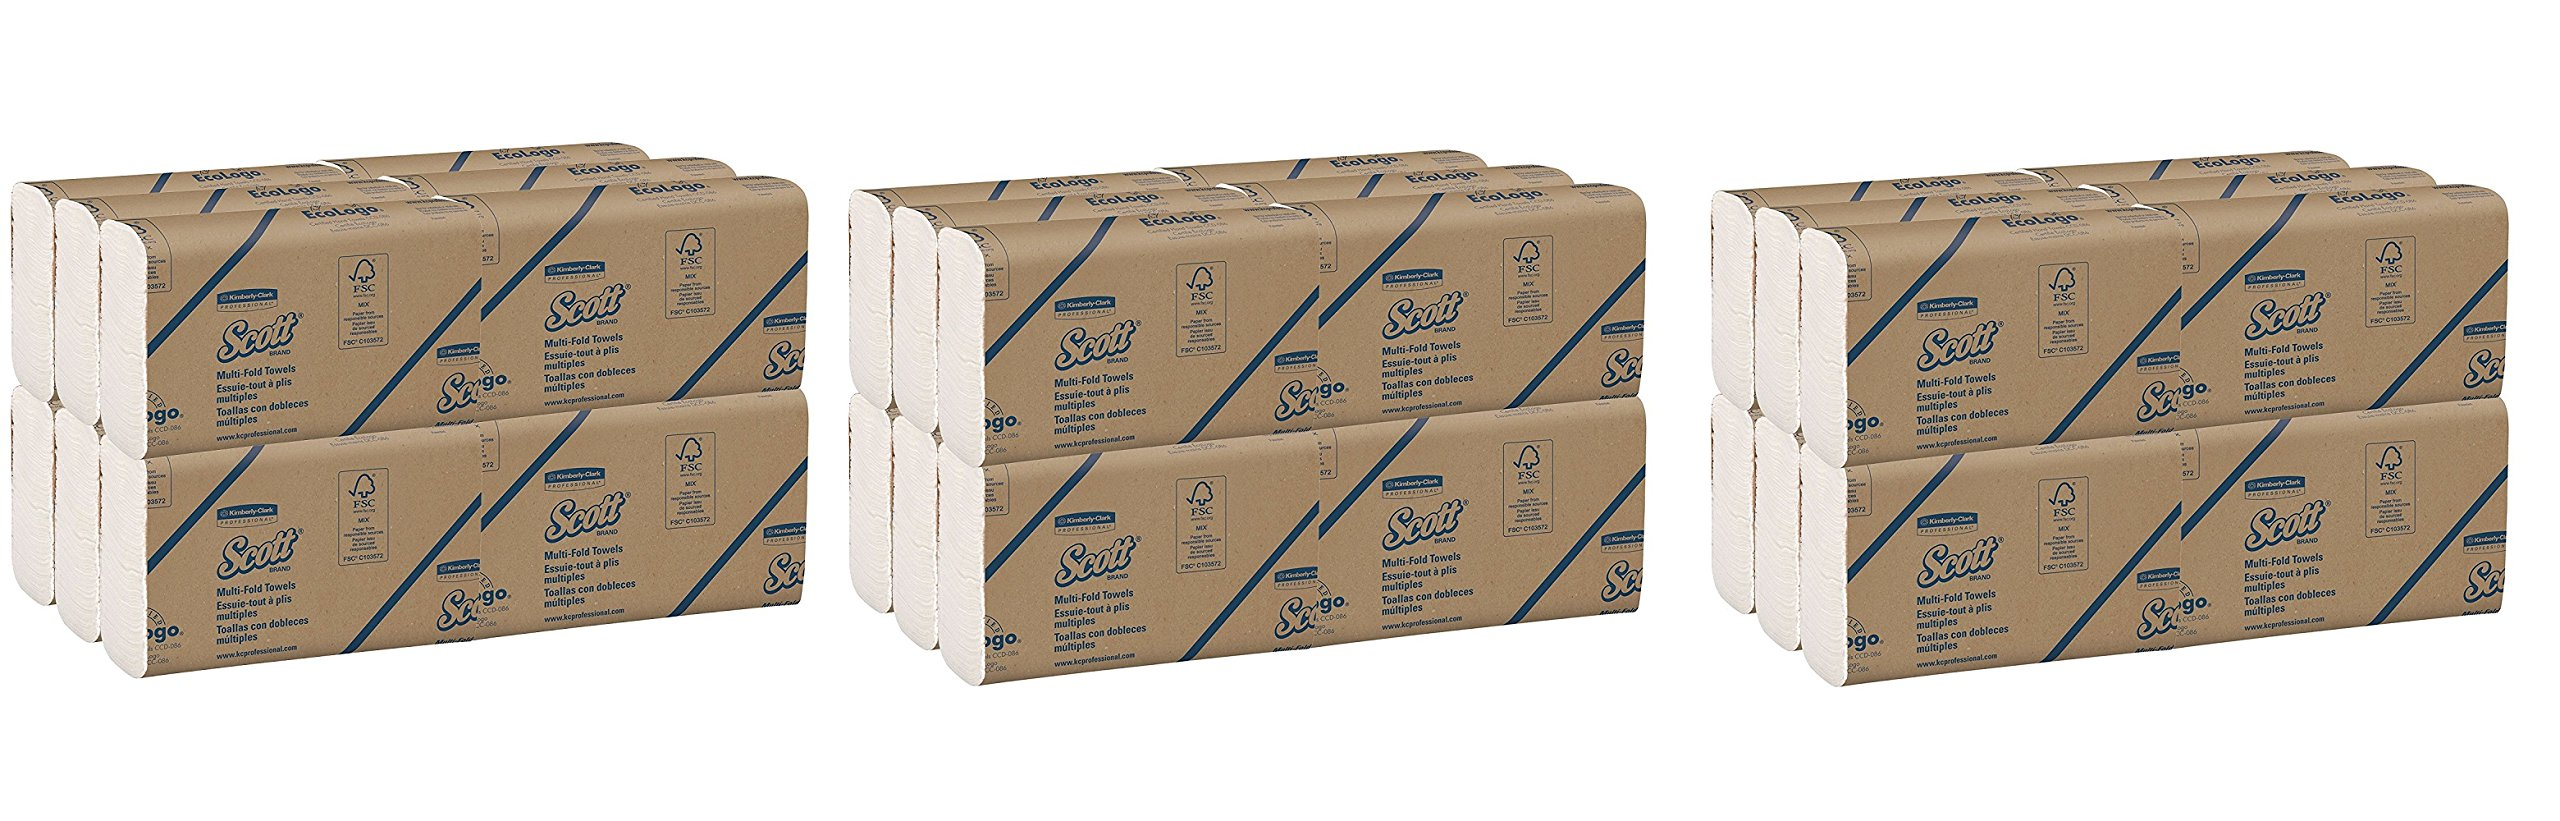 Scott Multifold Paper Towels (03650) with Fast-Drying Absorbency Pockets IYgjxS, White, 250 Multifold Towels / Pack, 3Pack (12 Packs) (36 Packs Total)